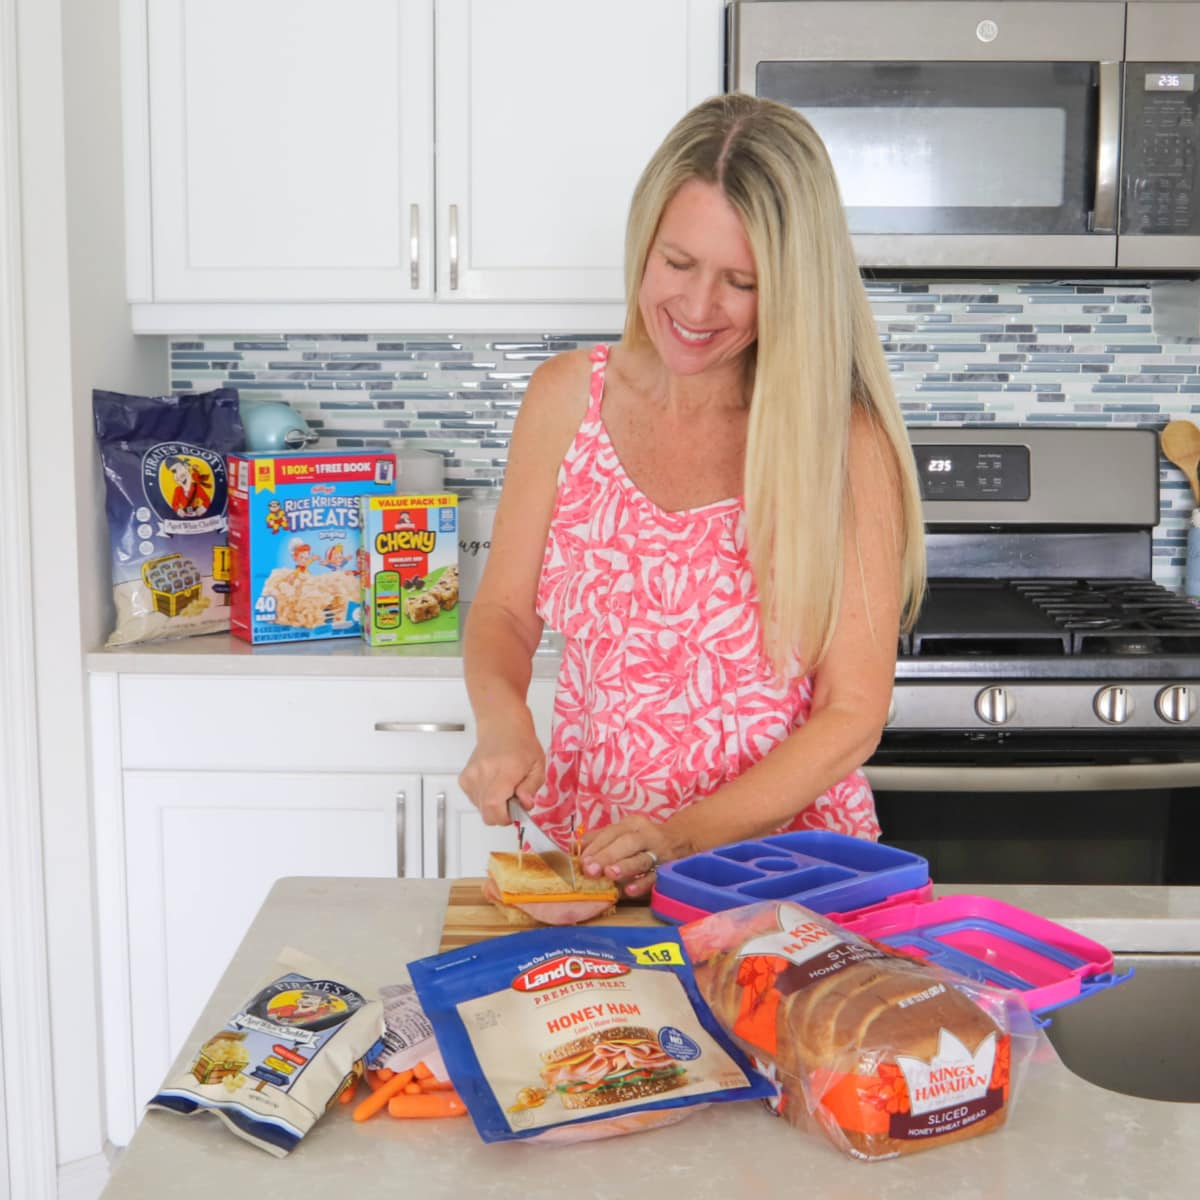 A mom making school lunches